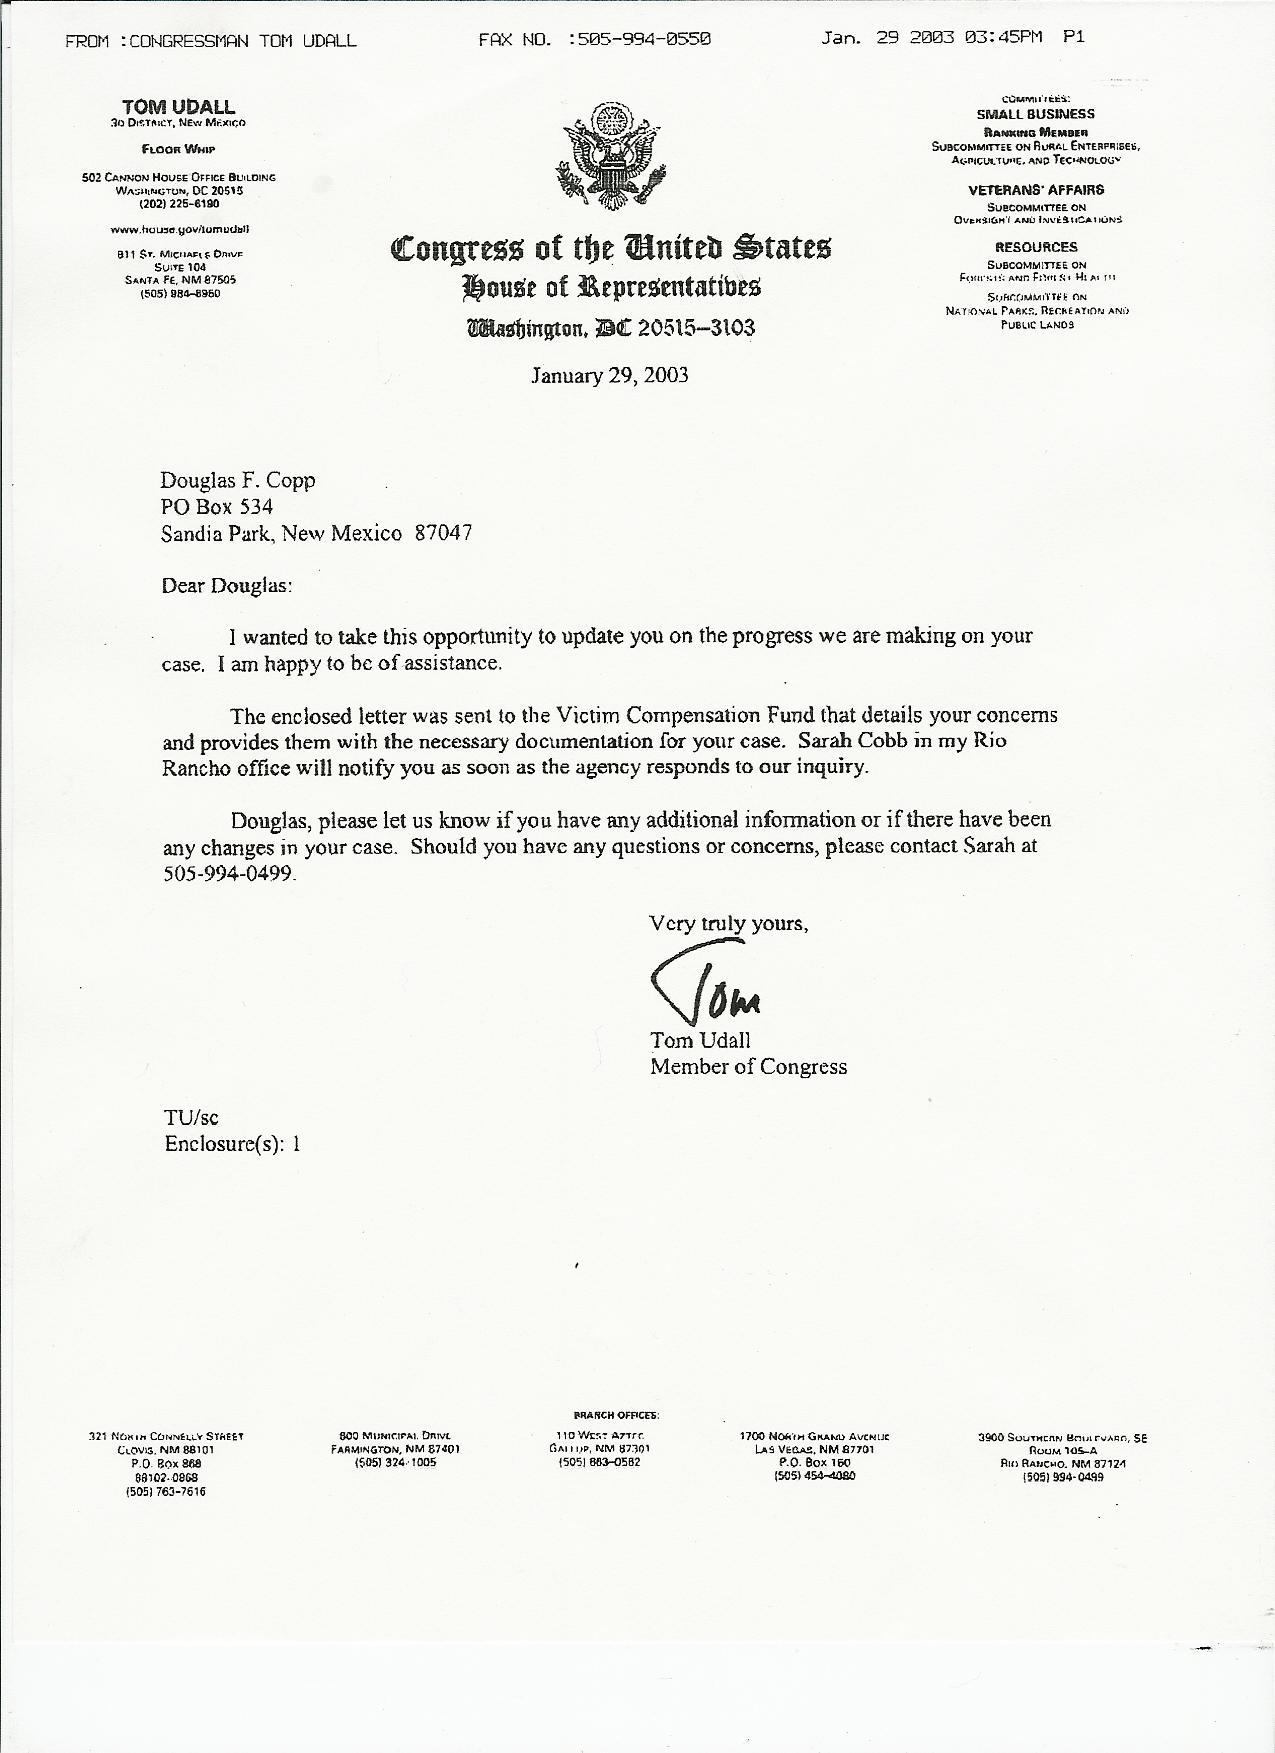 Copy Of Congressman Tom Udall's Letter